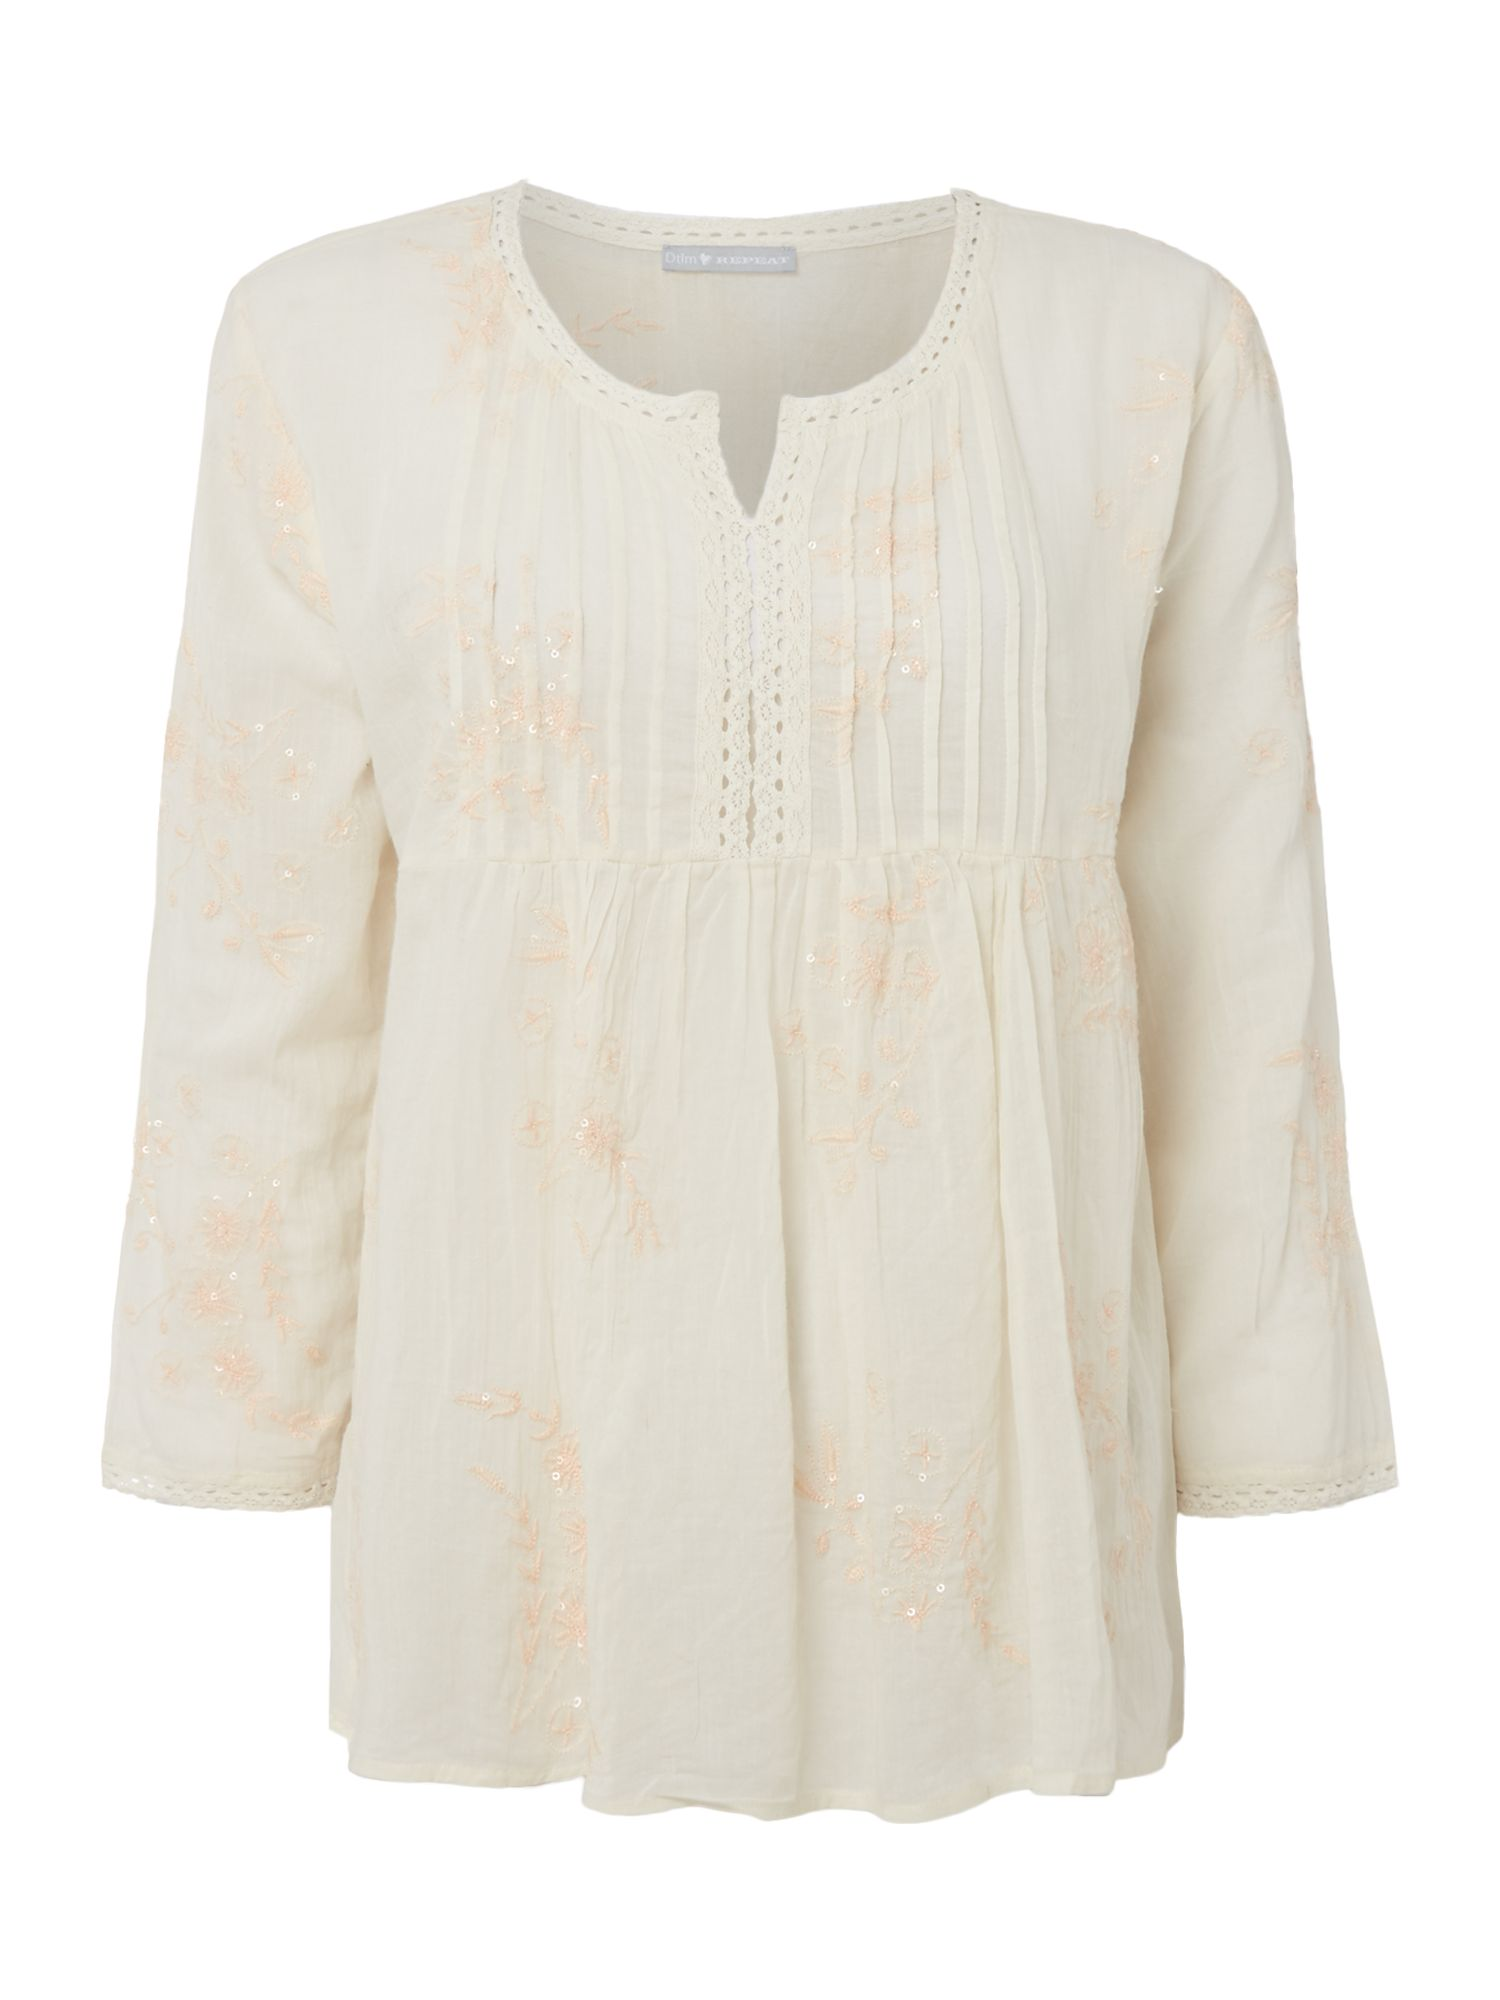 Repeat Cashmere Embroidery long sleeve top, Cream